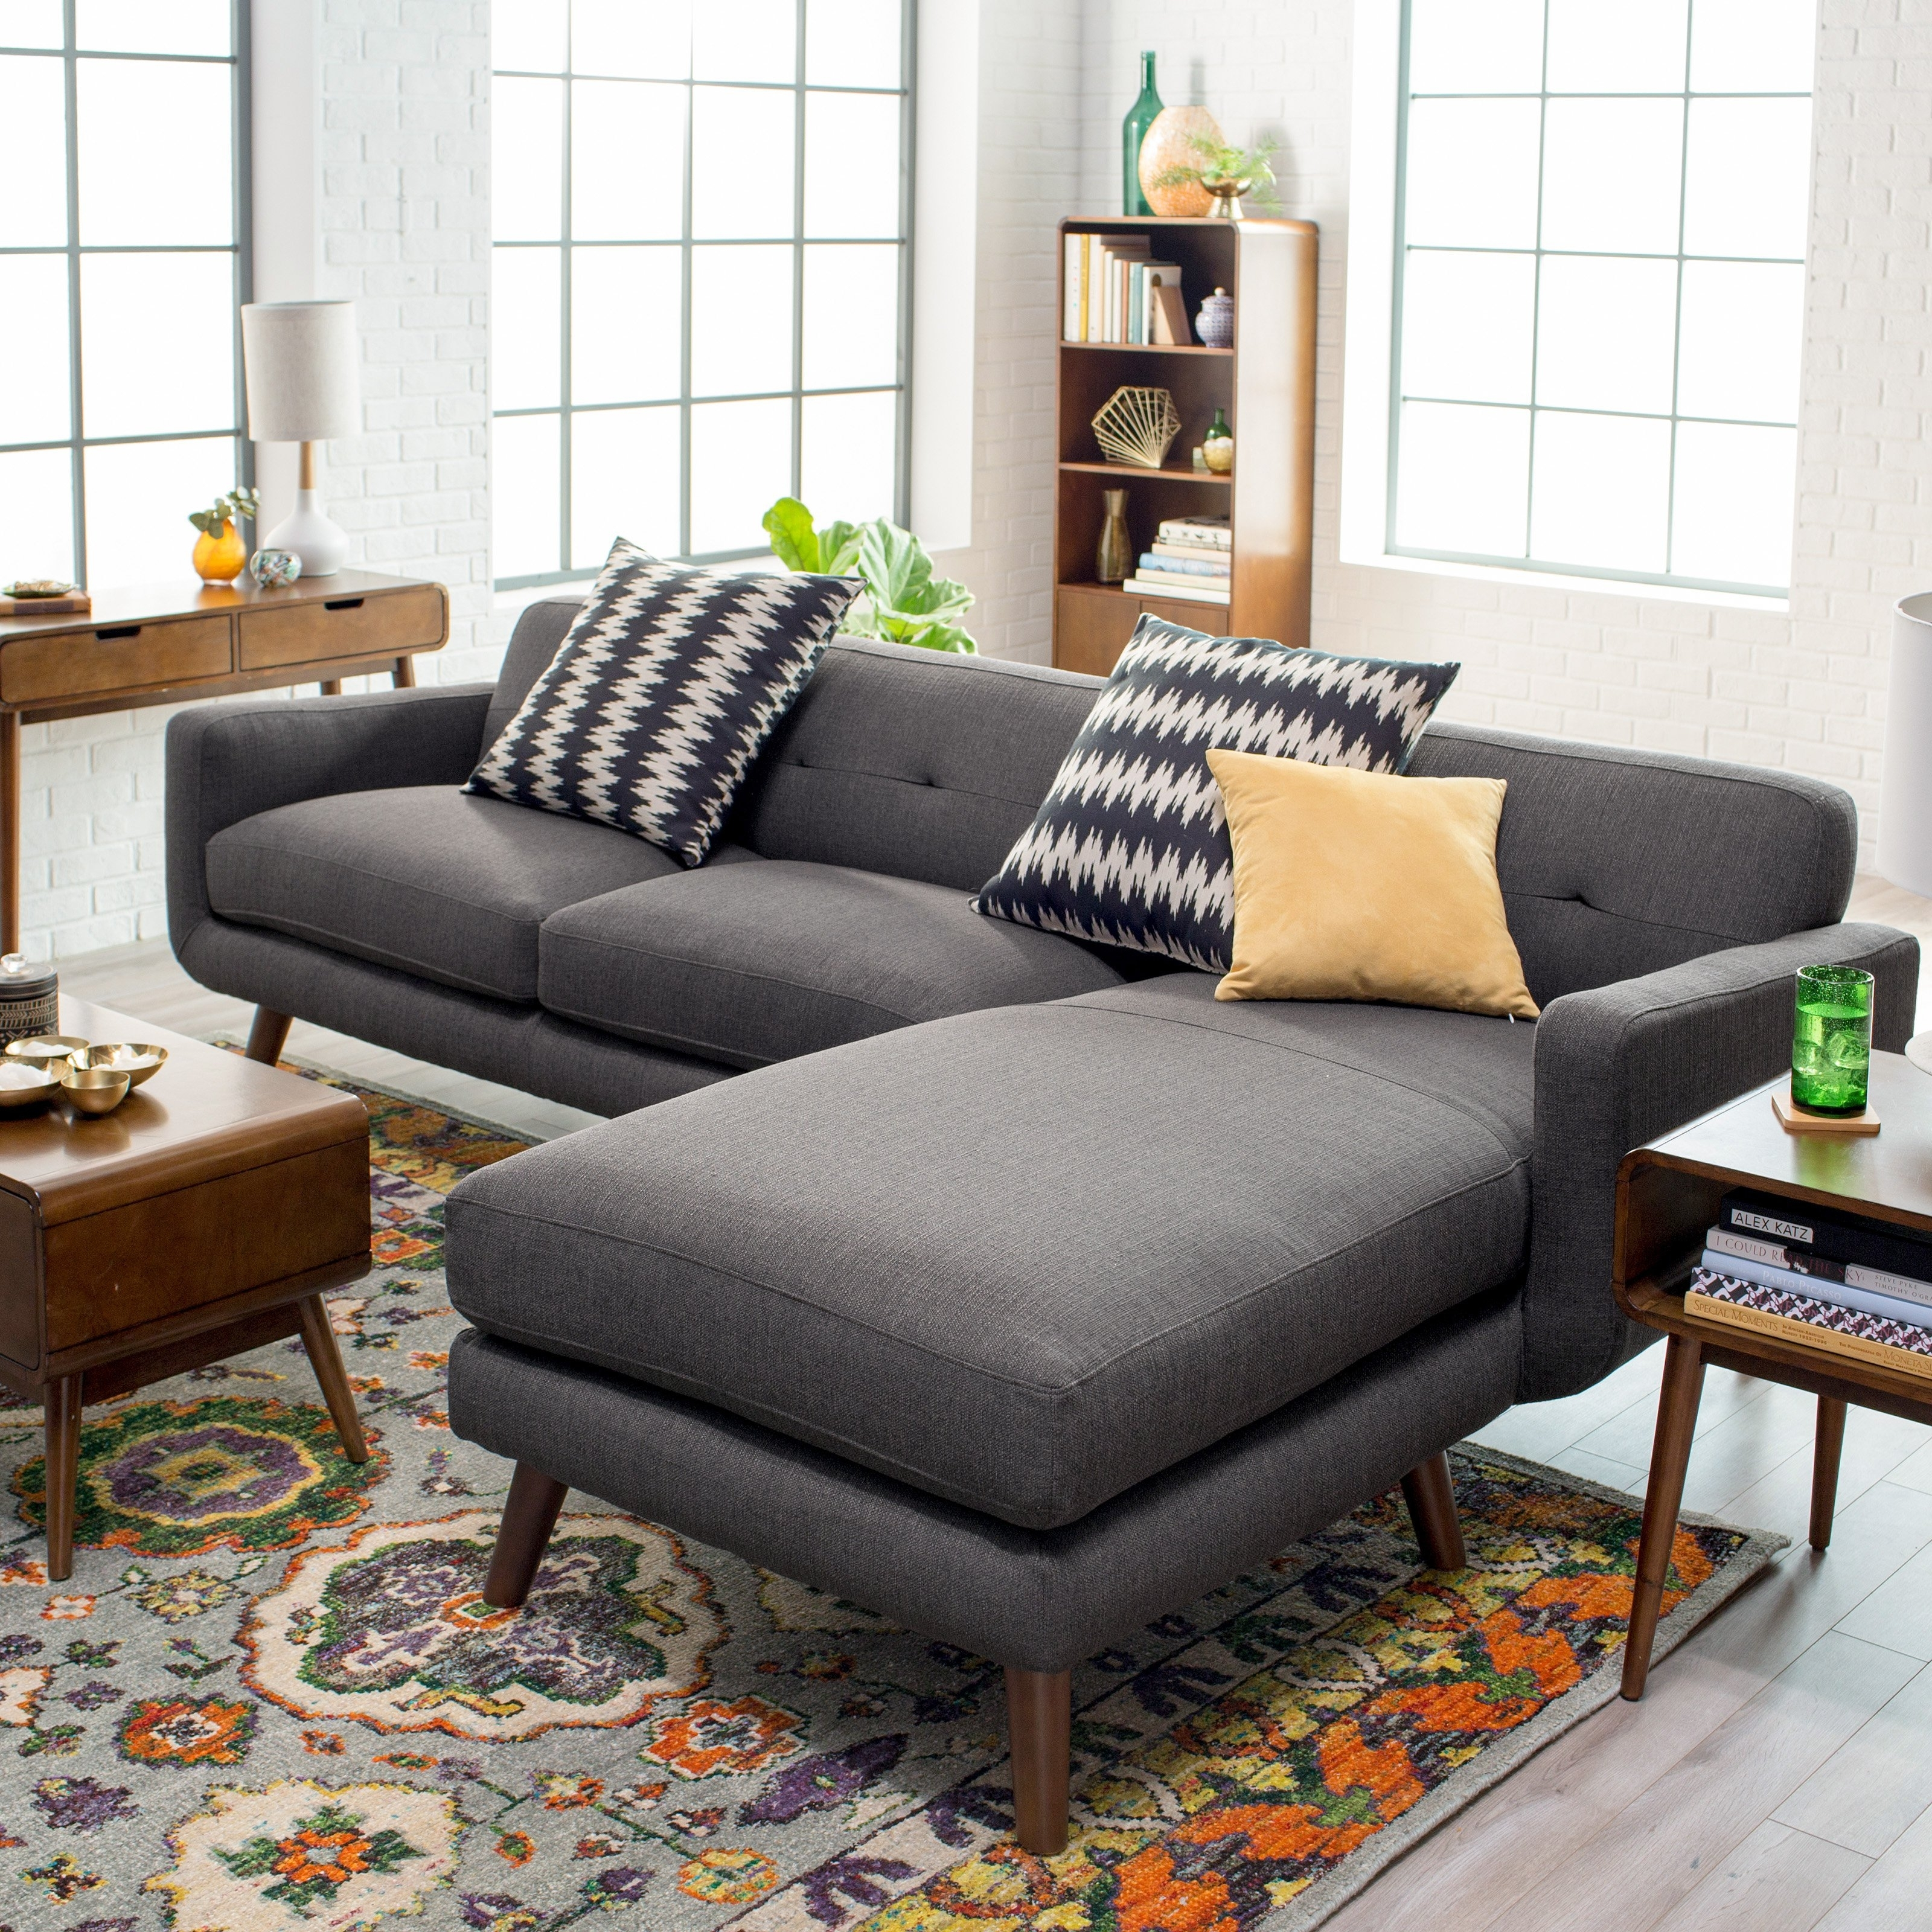 Dorel Living Small Spaces Configurable Sectional Sofa | Hayneedle within Sectional Sofas (Image 3 of 10)